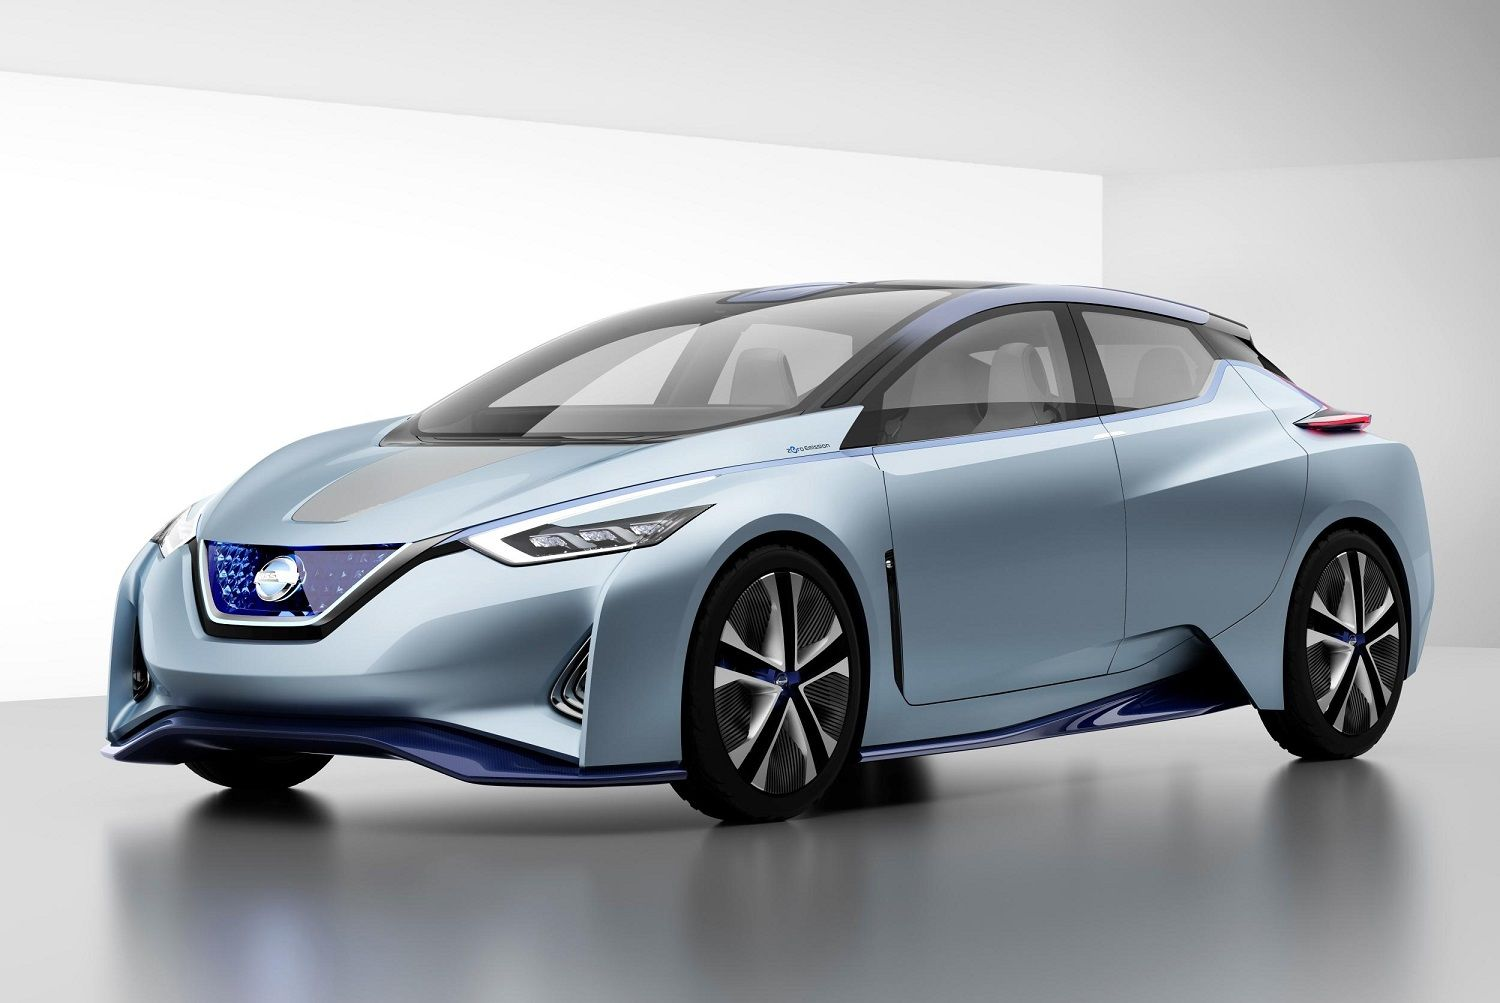 2018 Nissan Leaf Specs And Release Date Http Newautoreviews